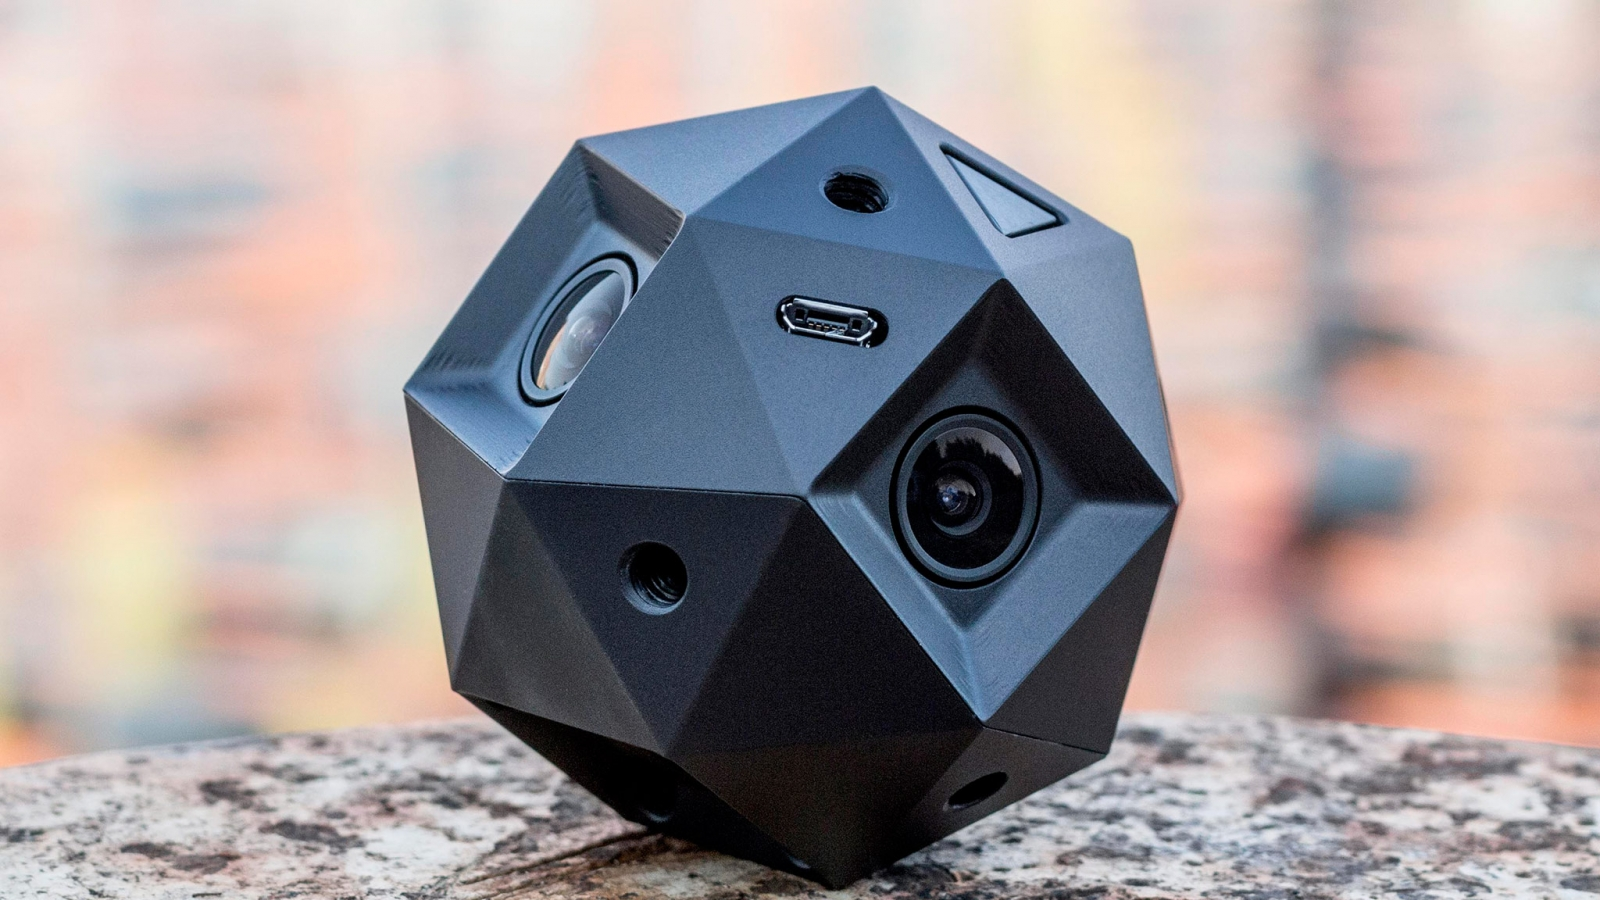 Sphericam2 360° Camera Blaton Design 360cities 3